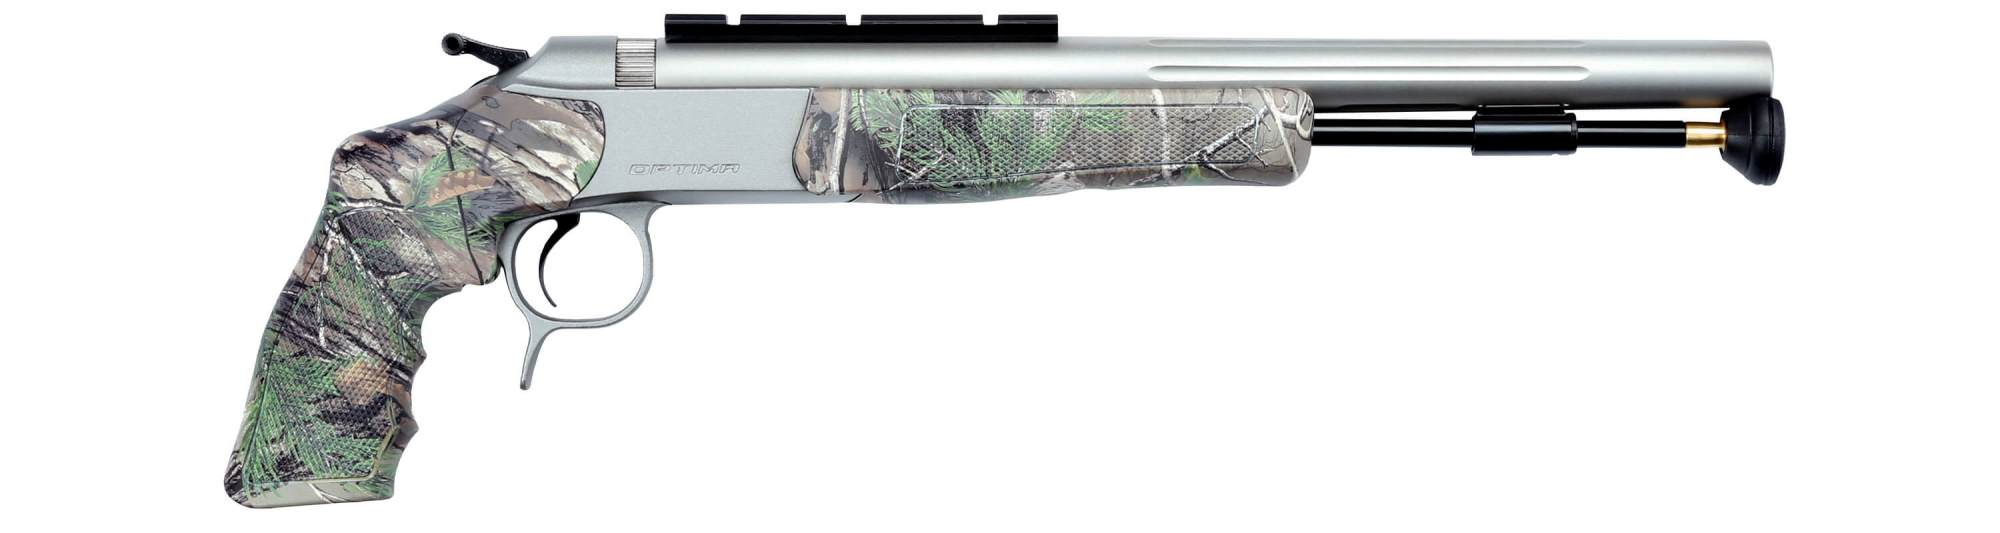 hight resolution of optima v2 pistol camo and stainless steel